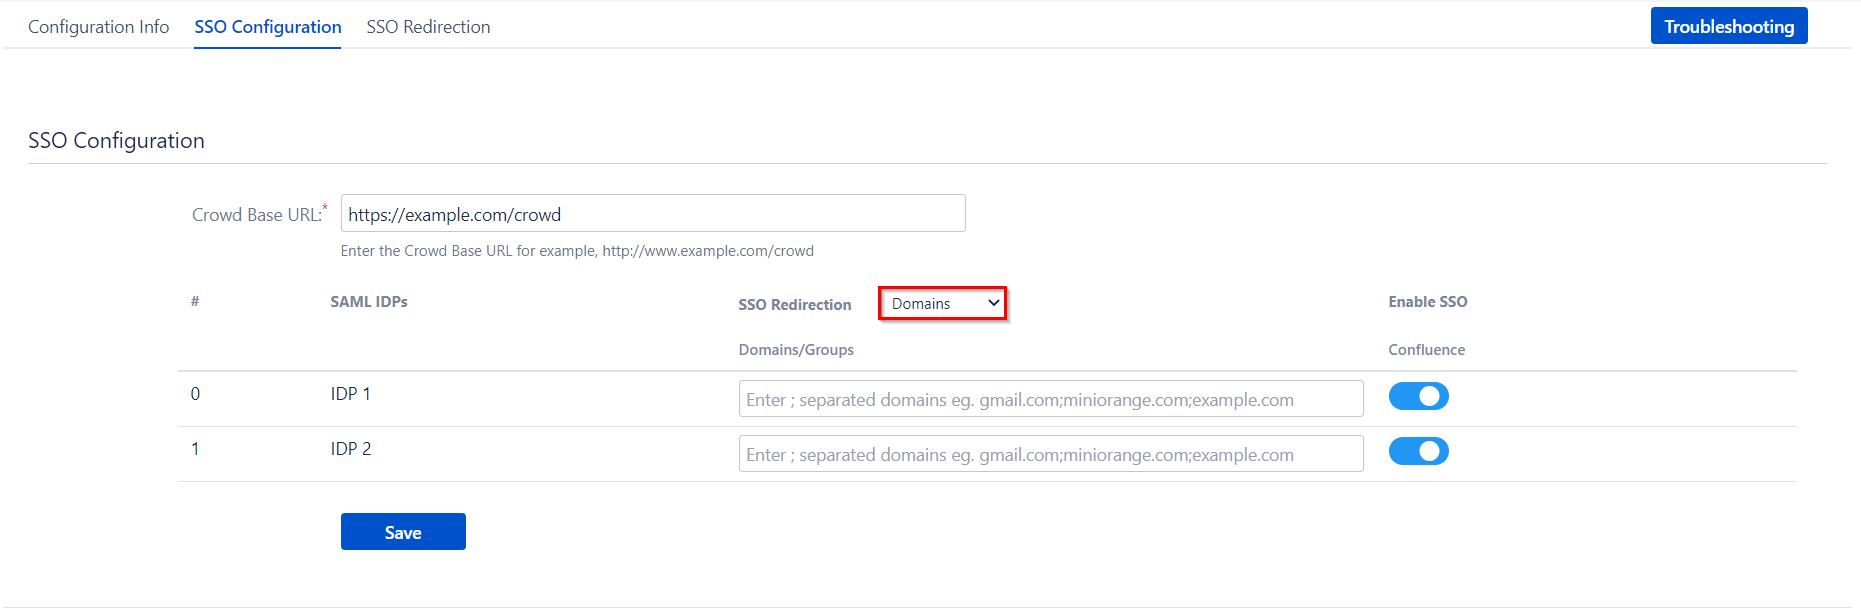 SAML Single Sign On (SSO) Connector for Crowd and Confluence, Domain Mapping